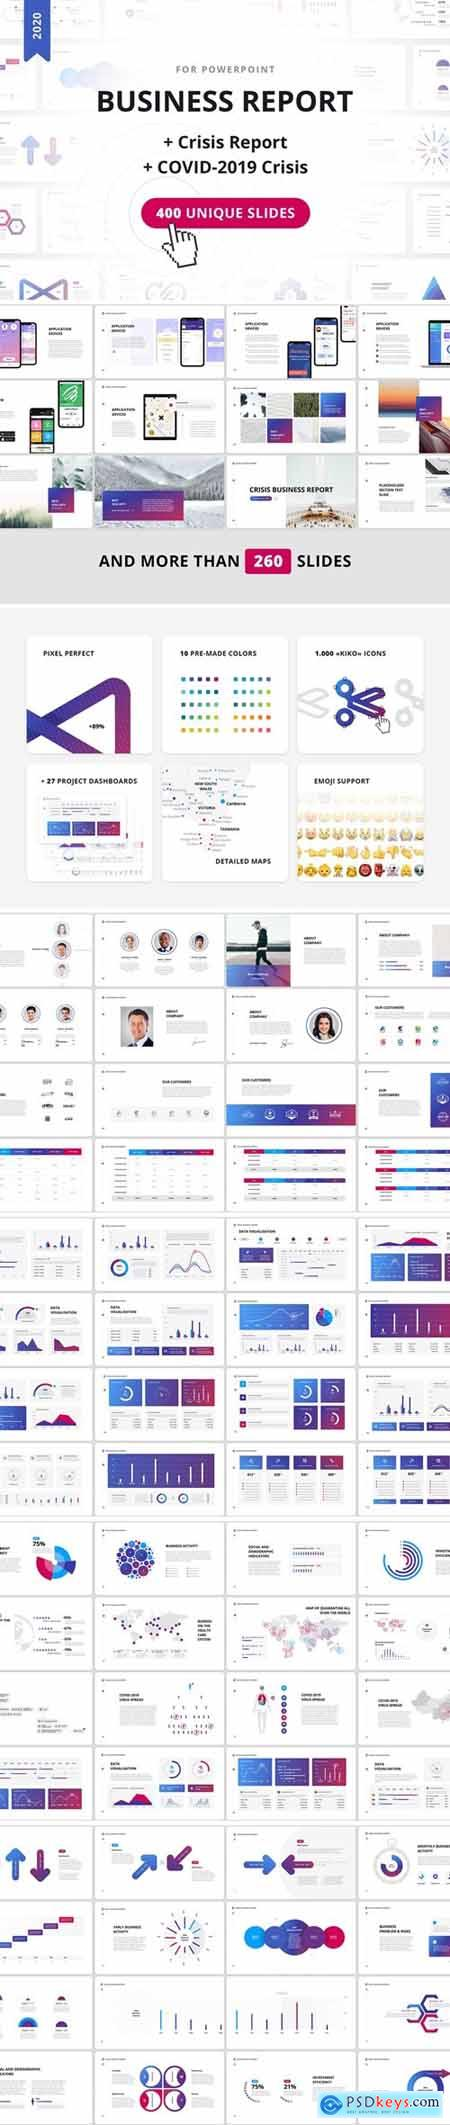 Business Report 2020 Powerpoint, Keynote and Google Slides Templates